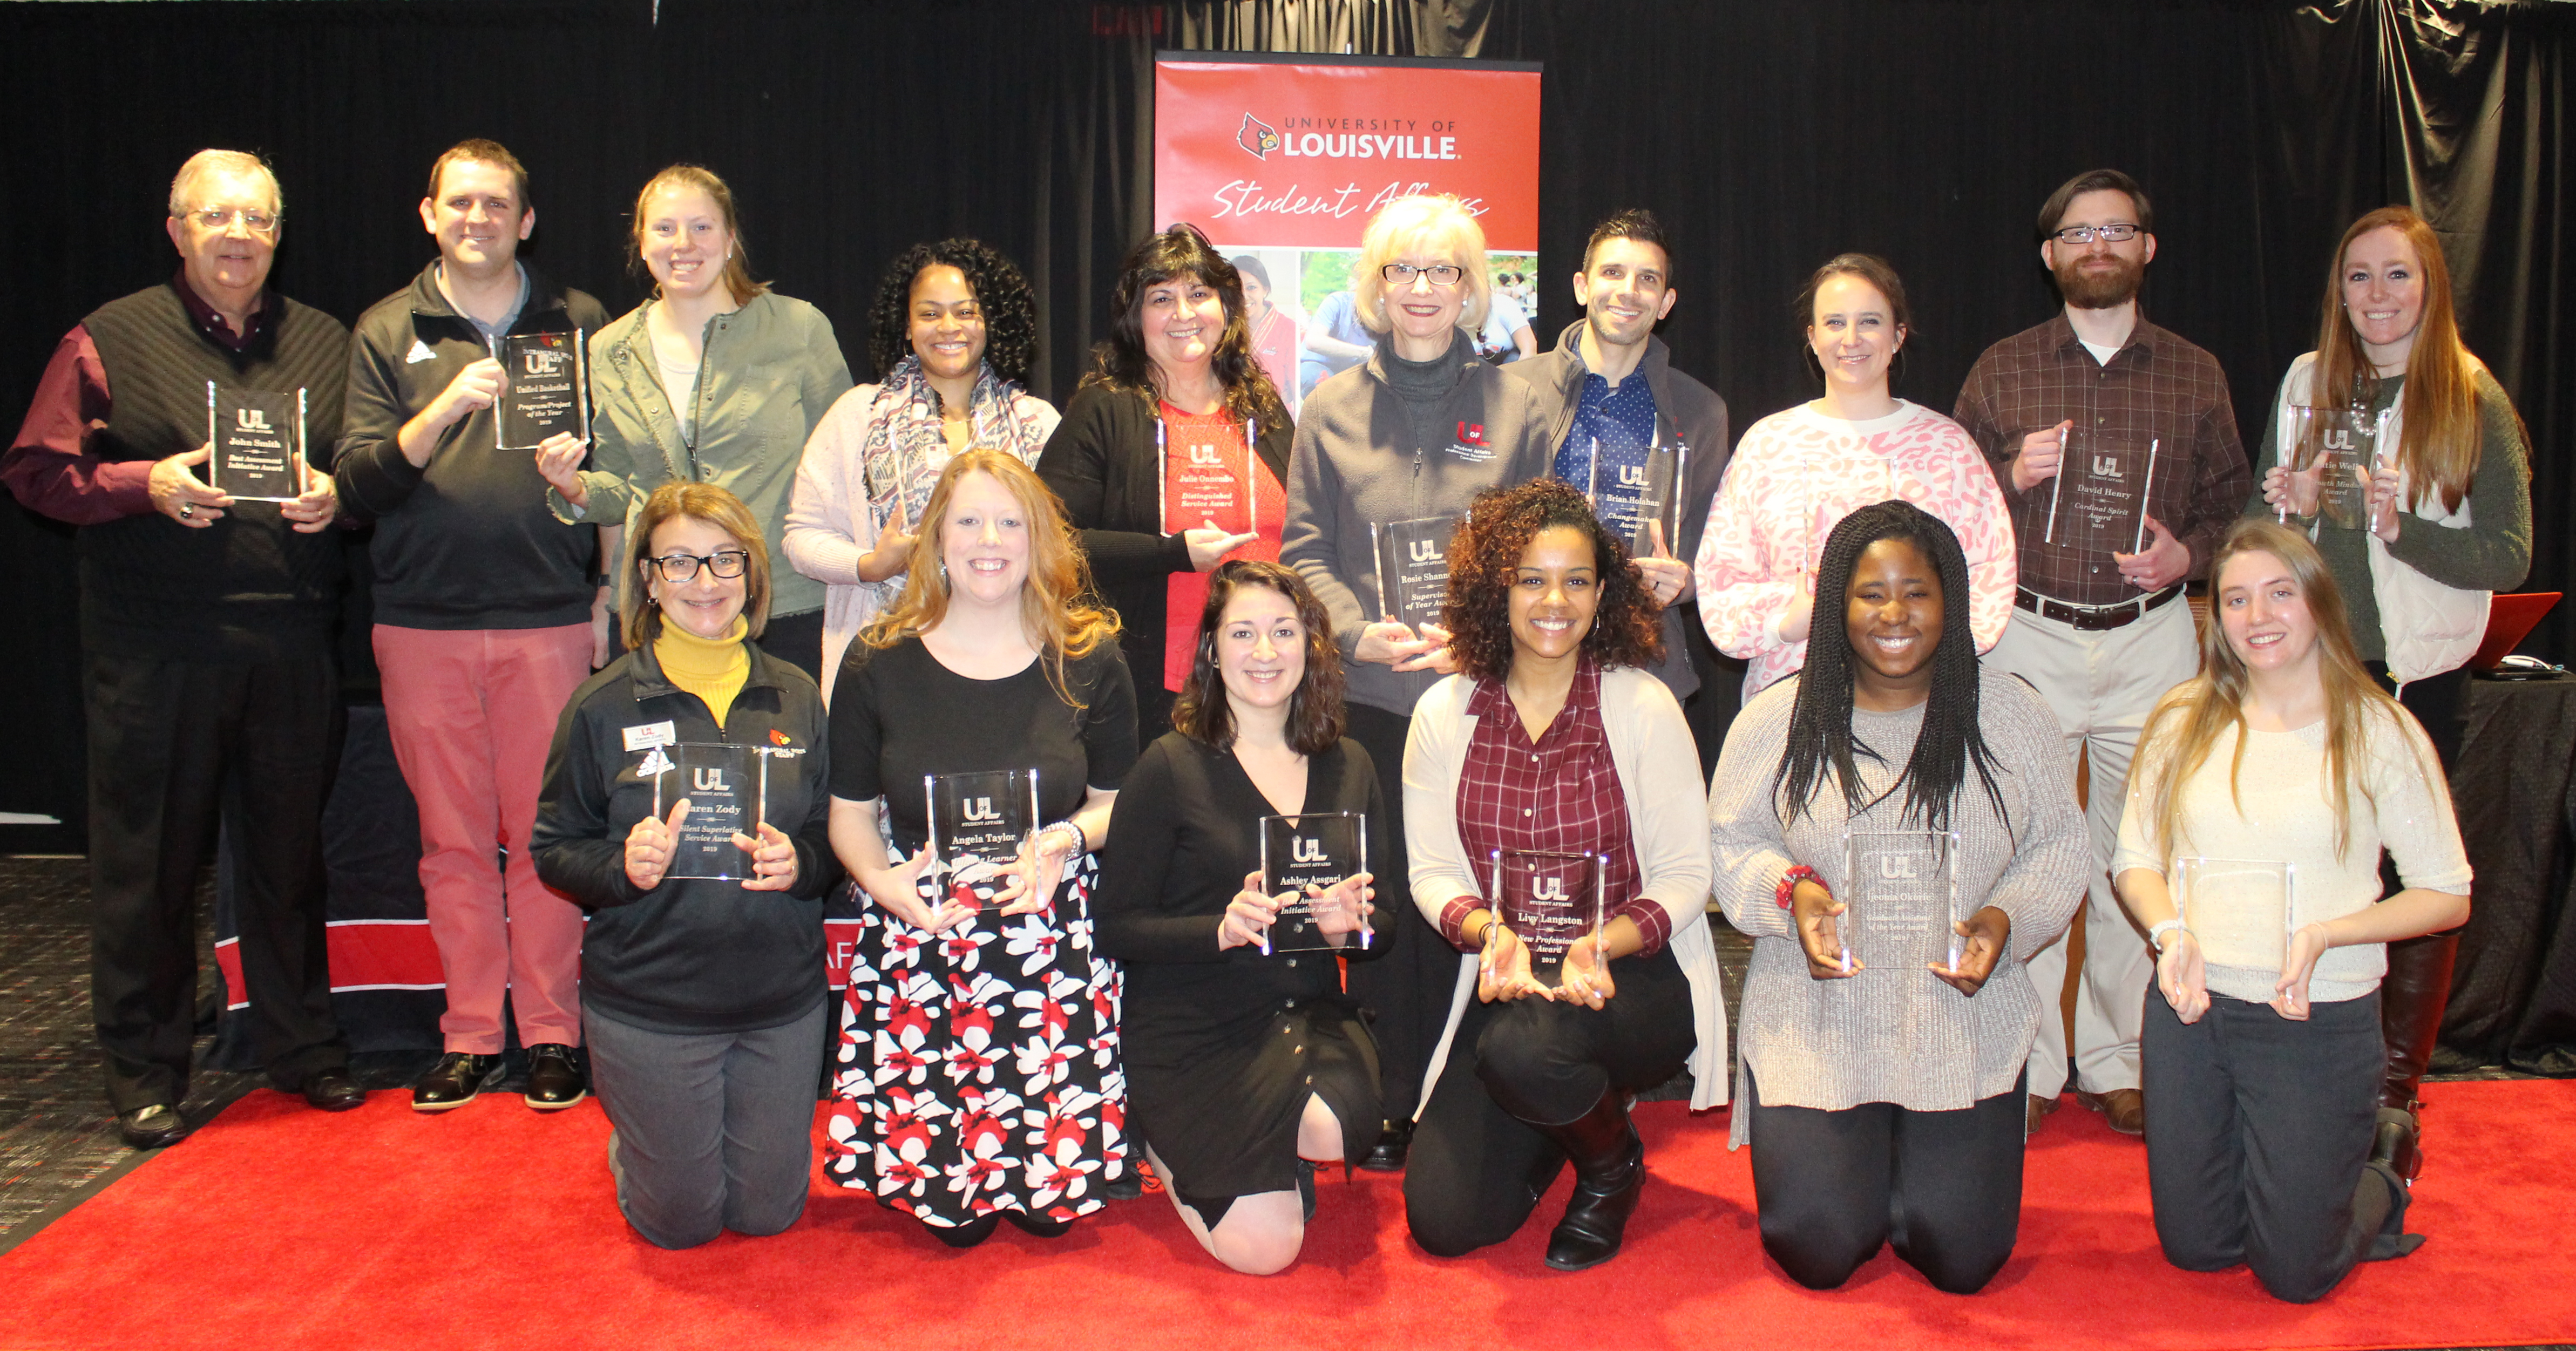 2019 award winners posing as a group with their trophies